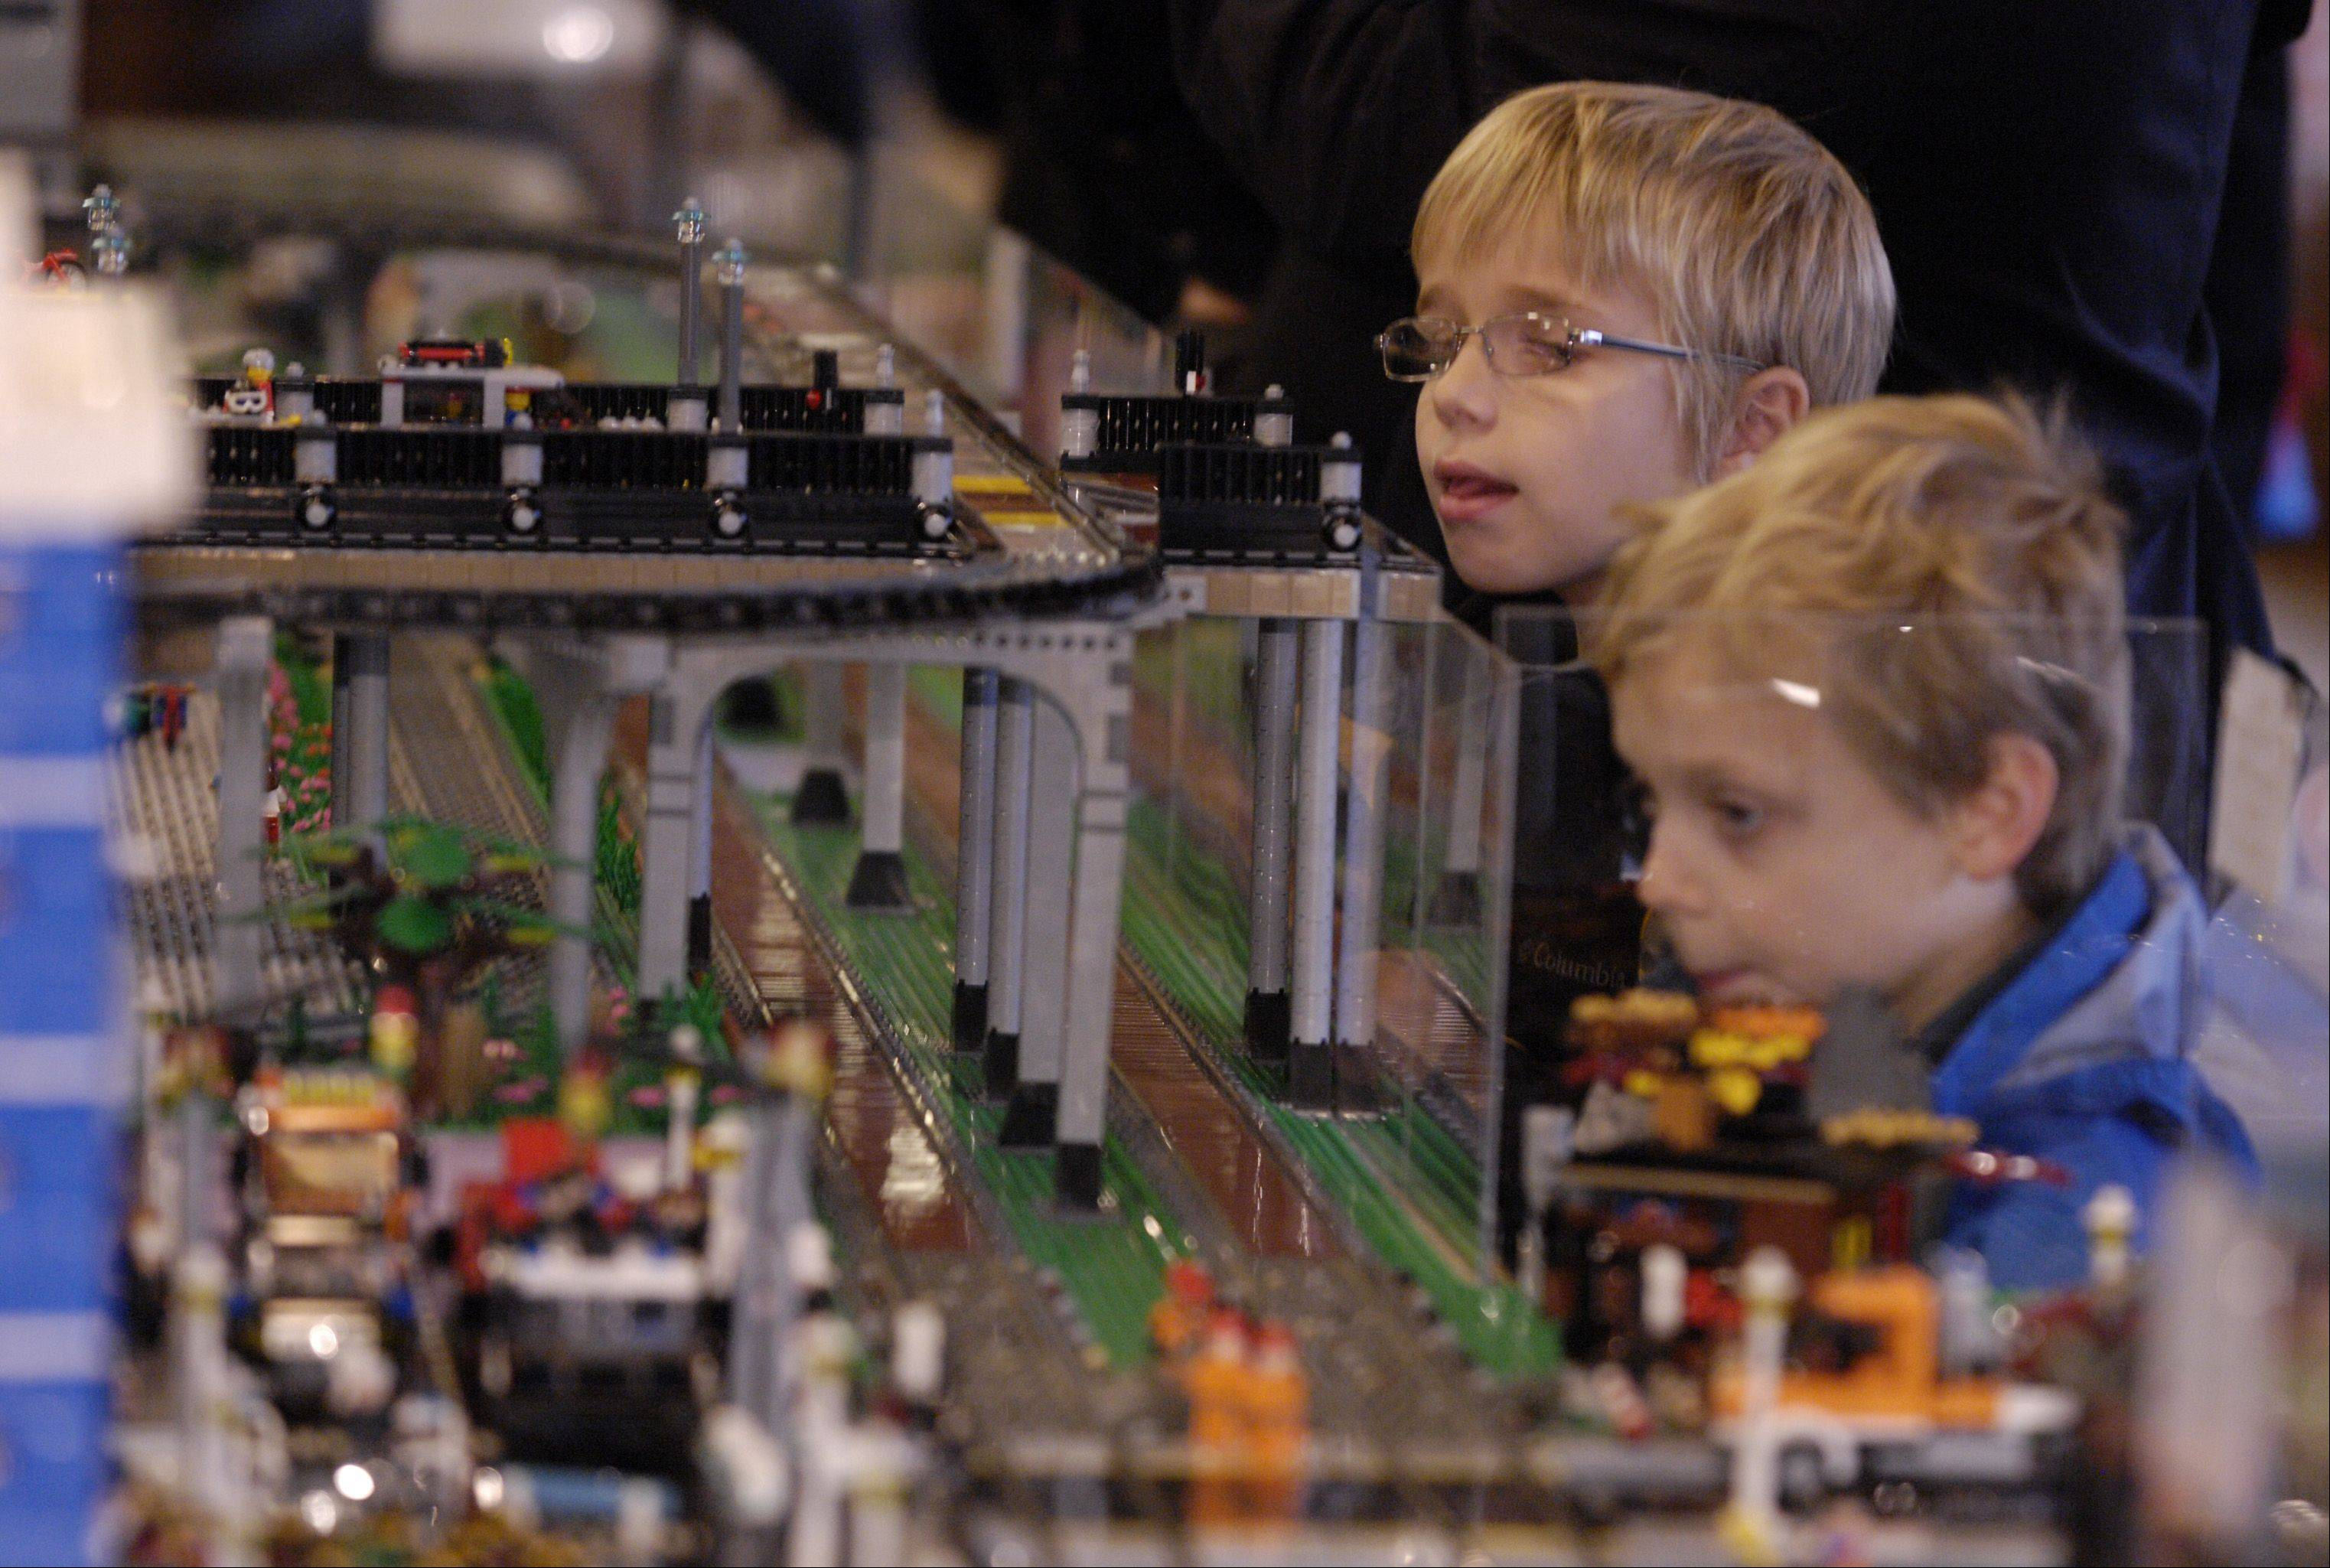 Jude Fredericks, 9, and his brother, Eden, 7, of Glen Ellyn, check out the Lego train displays at Cantigny Park's annual Holiday Lego Train Show in Wheaton Sunday.